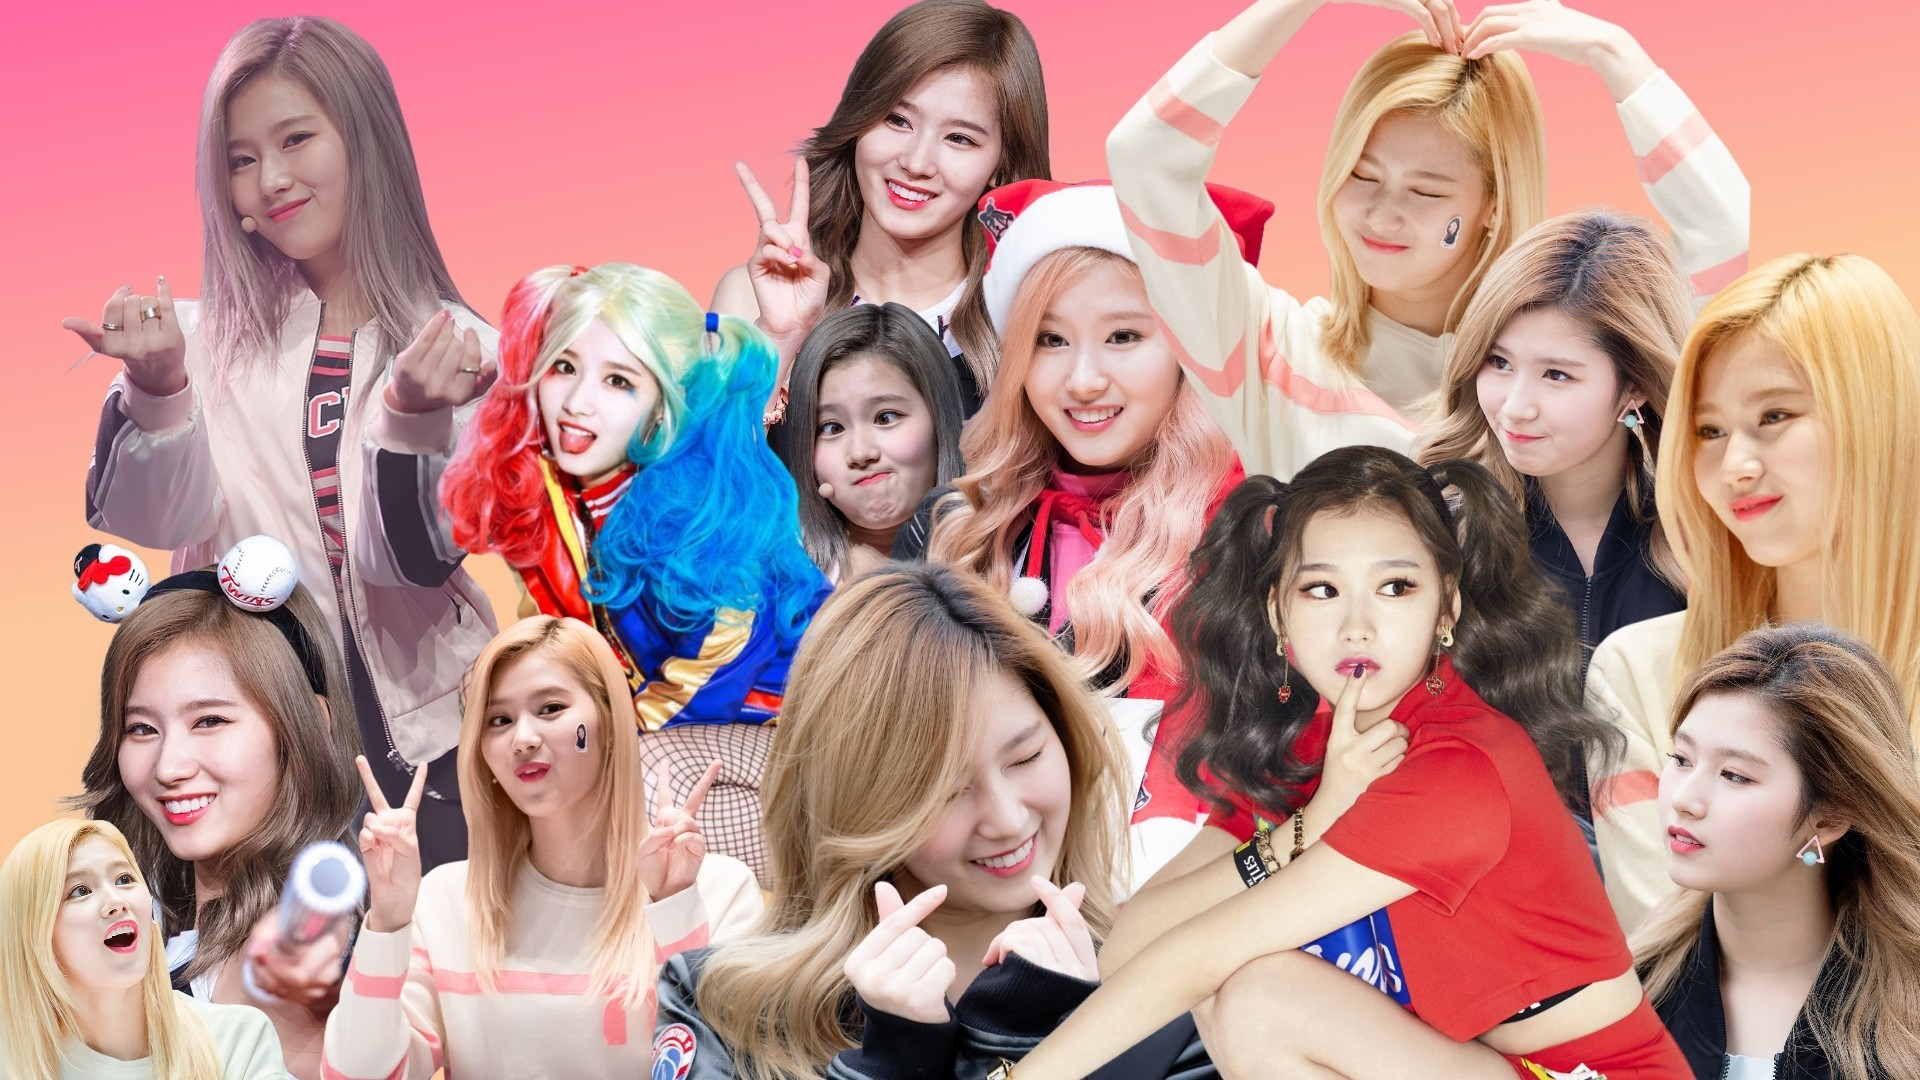 1920x1080  Sana, Tzuyu, and Dahyun collage wallpapers